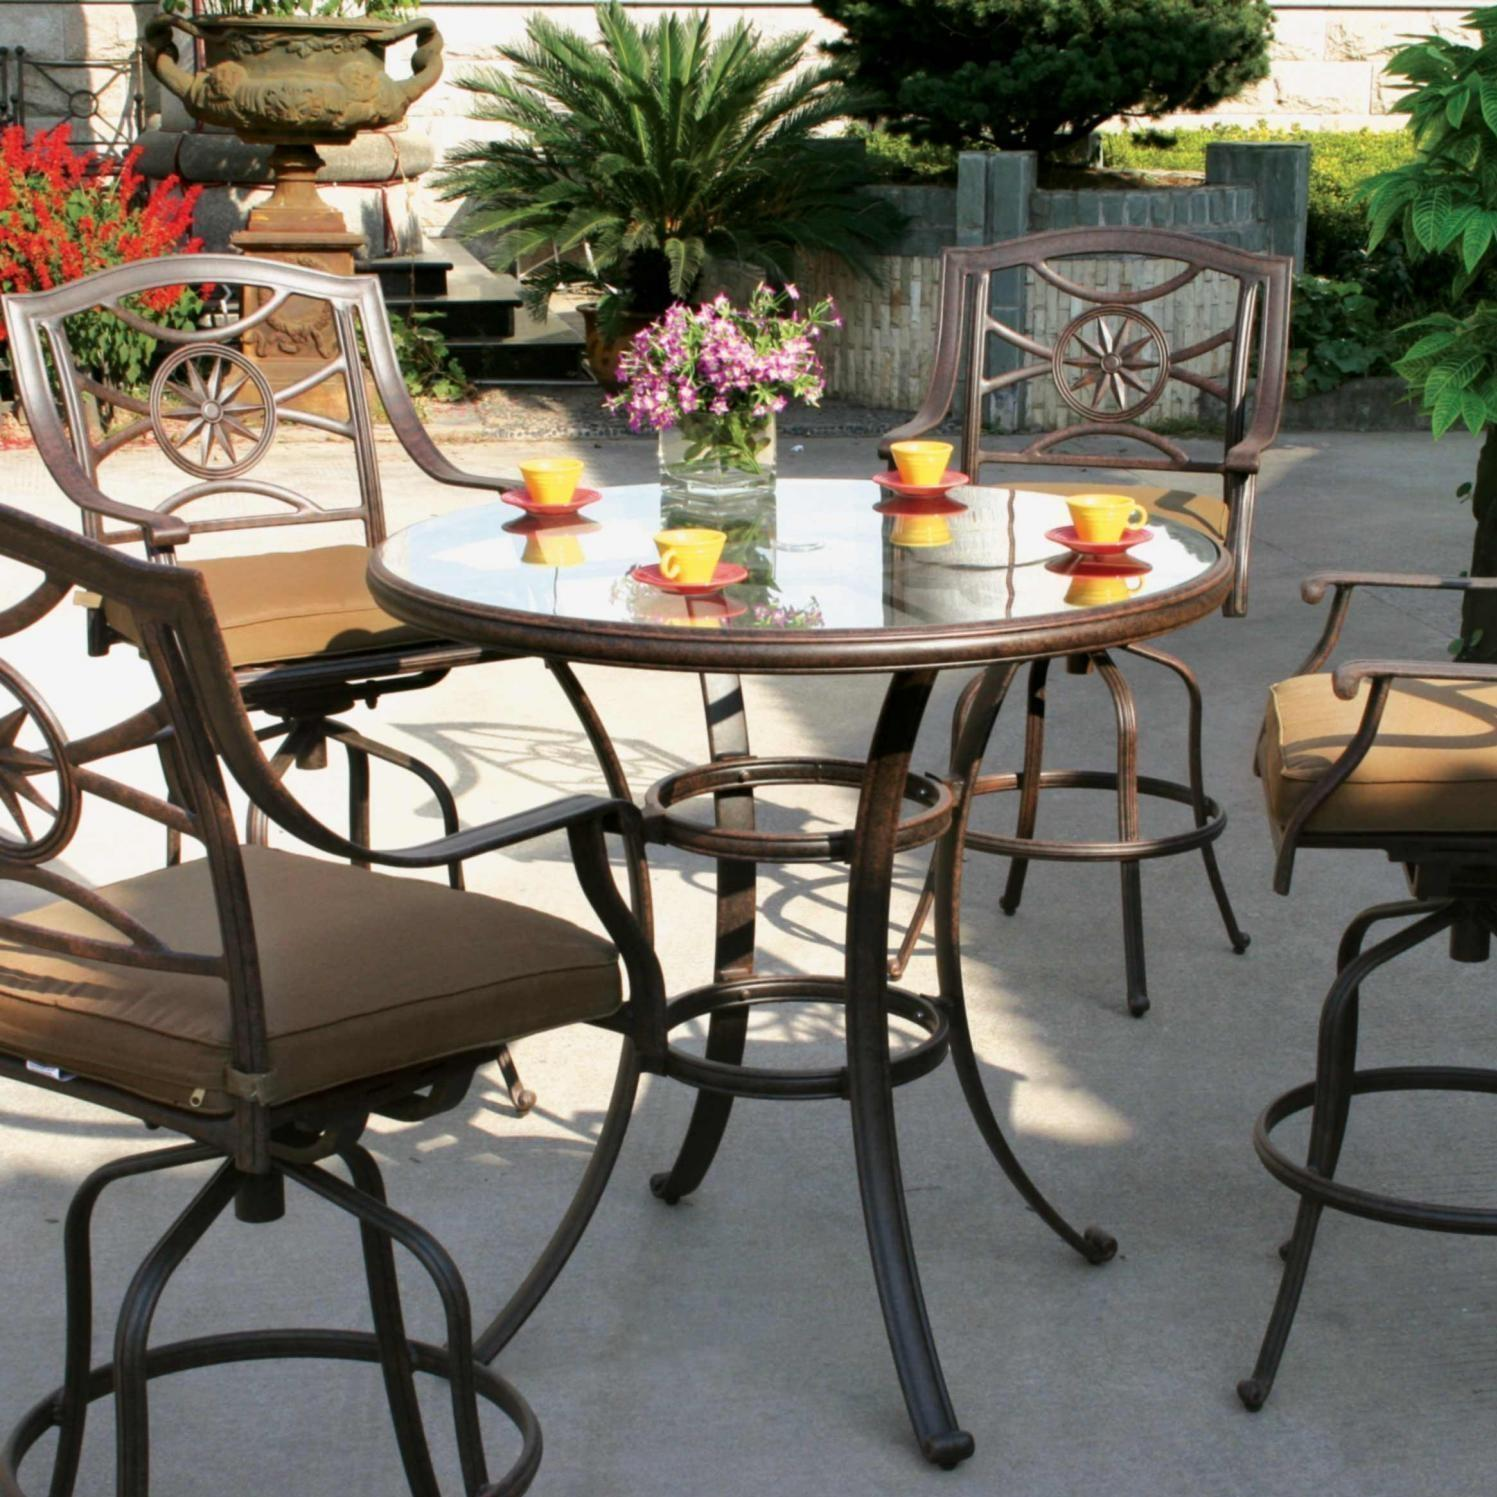 Practical Patio Bar And Counter Height Sets Online Discount FamilyHomeEquip